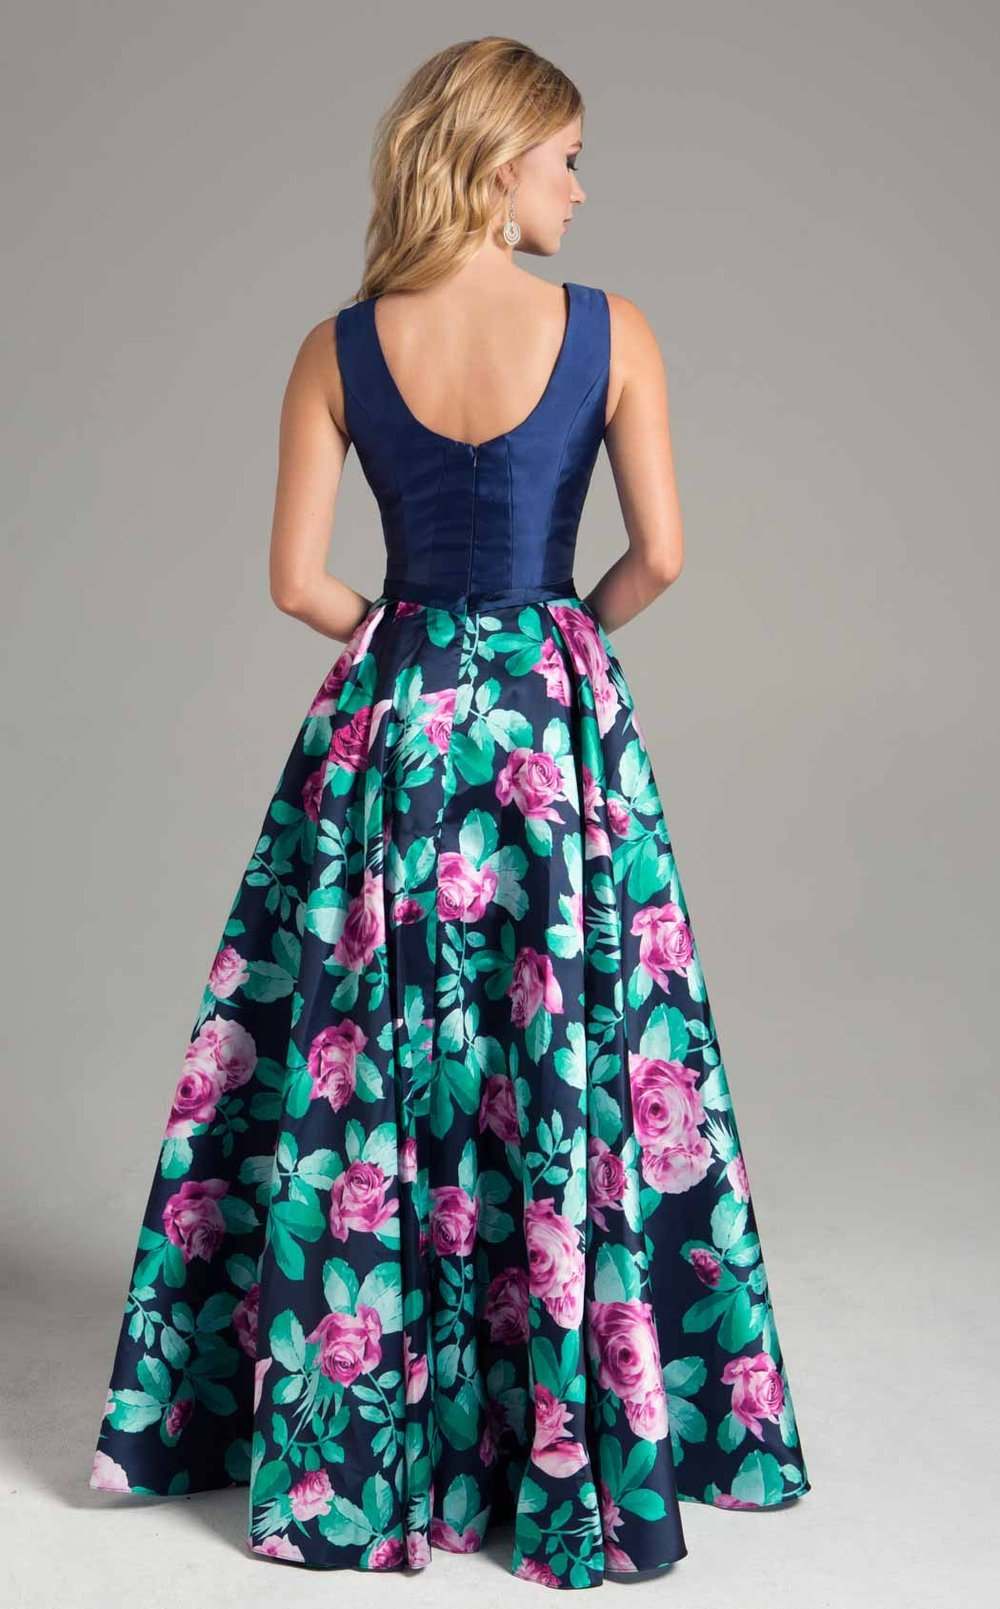 Lara Dresses - Dress In Floral Print A-line Dress 32826SC